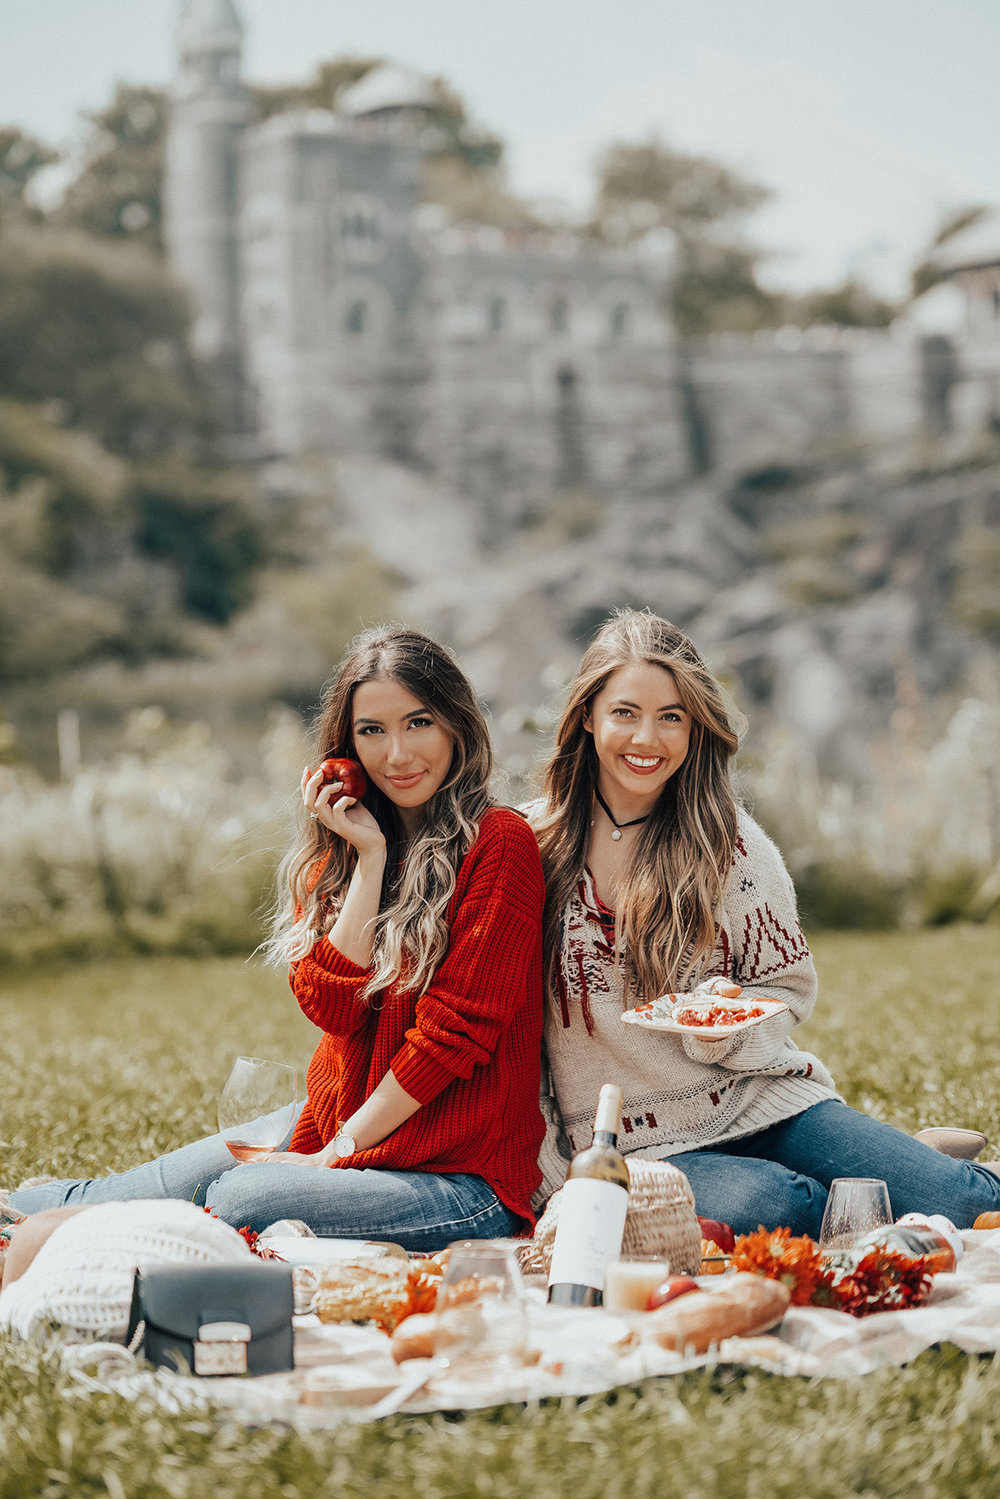 Fall Picnic Inspiration. Ulia Ali in NYC/